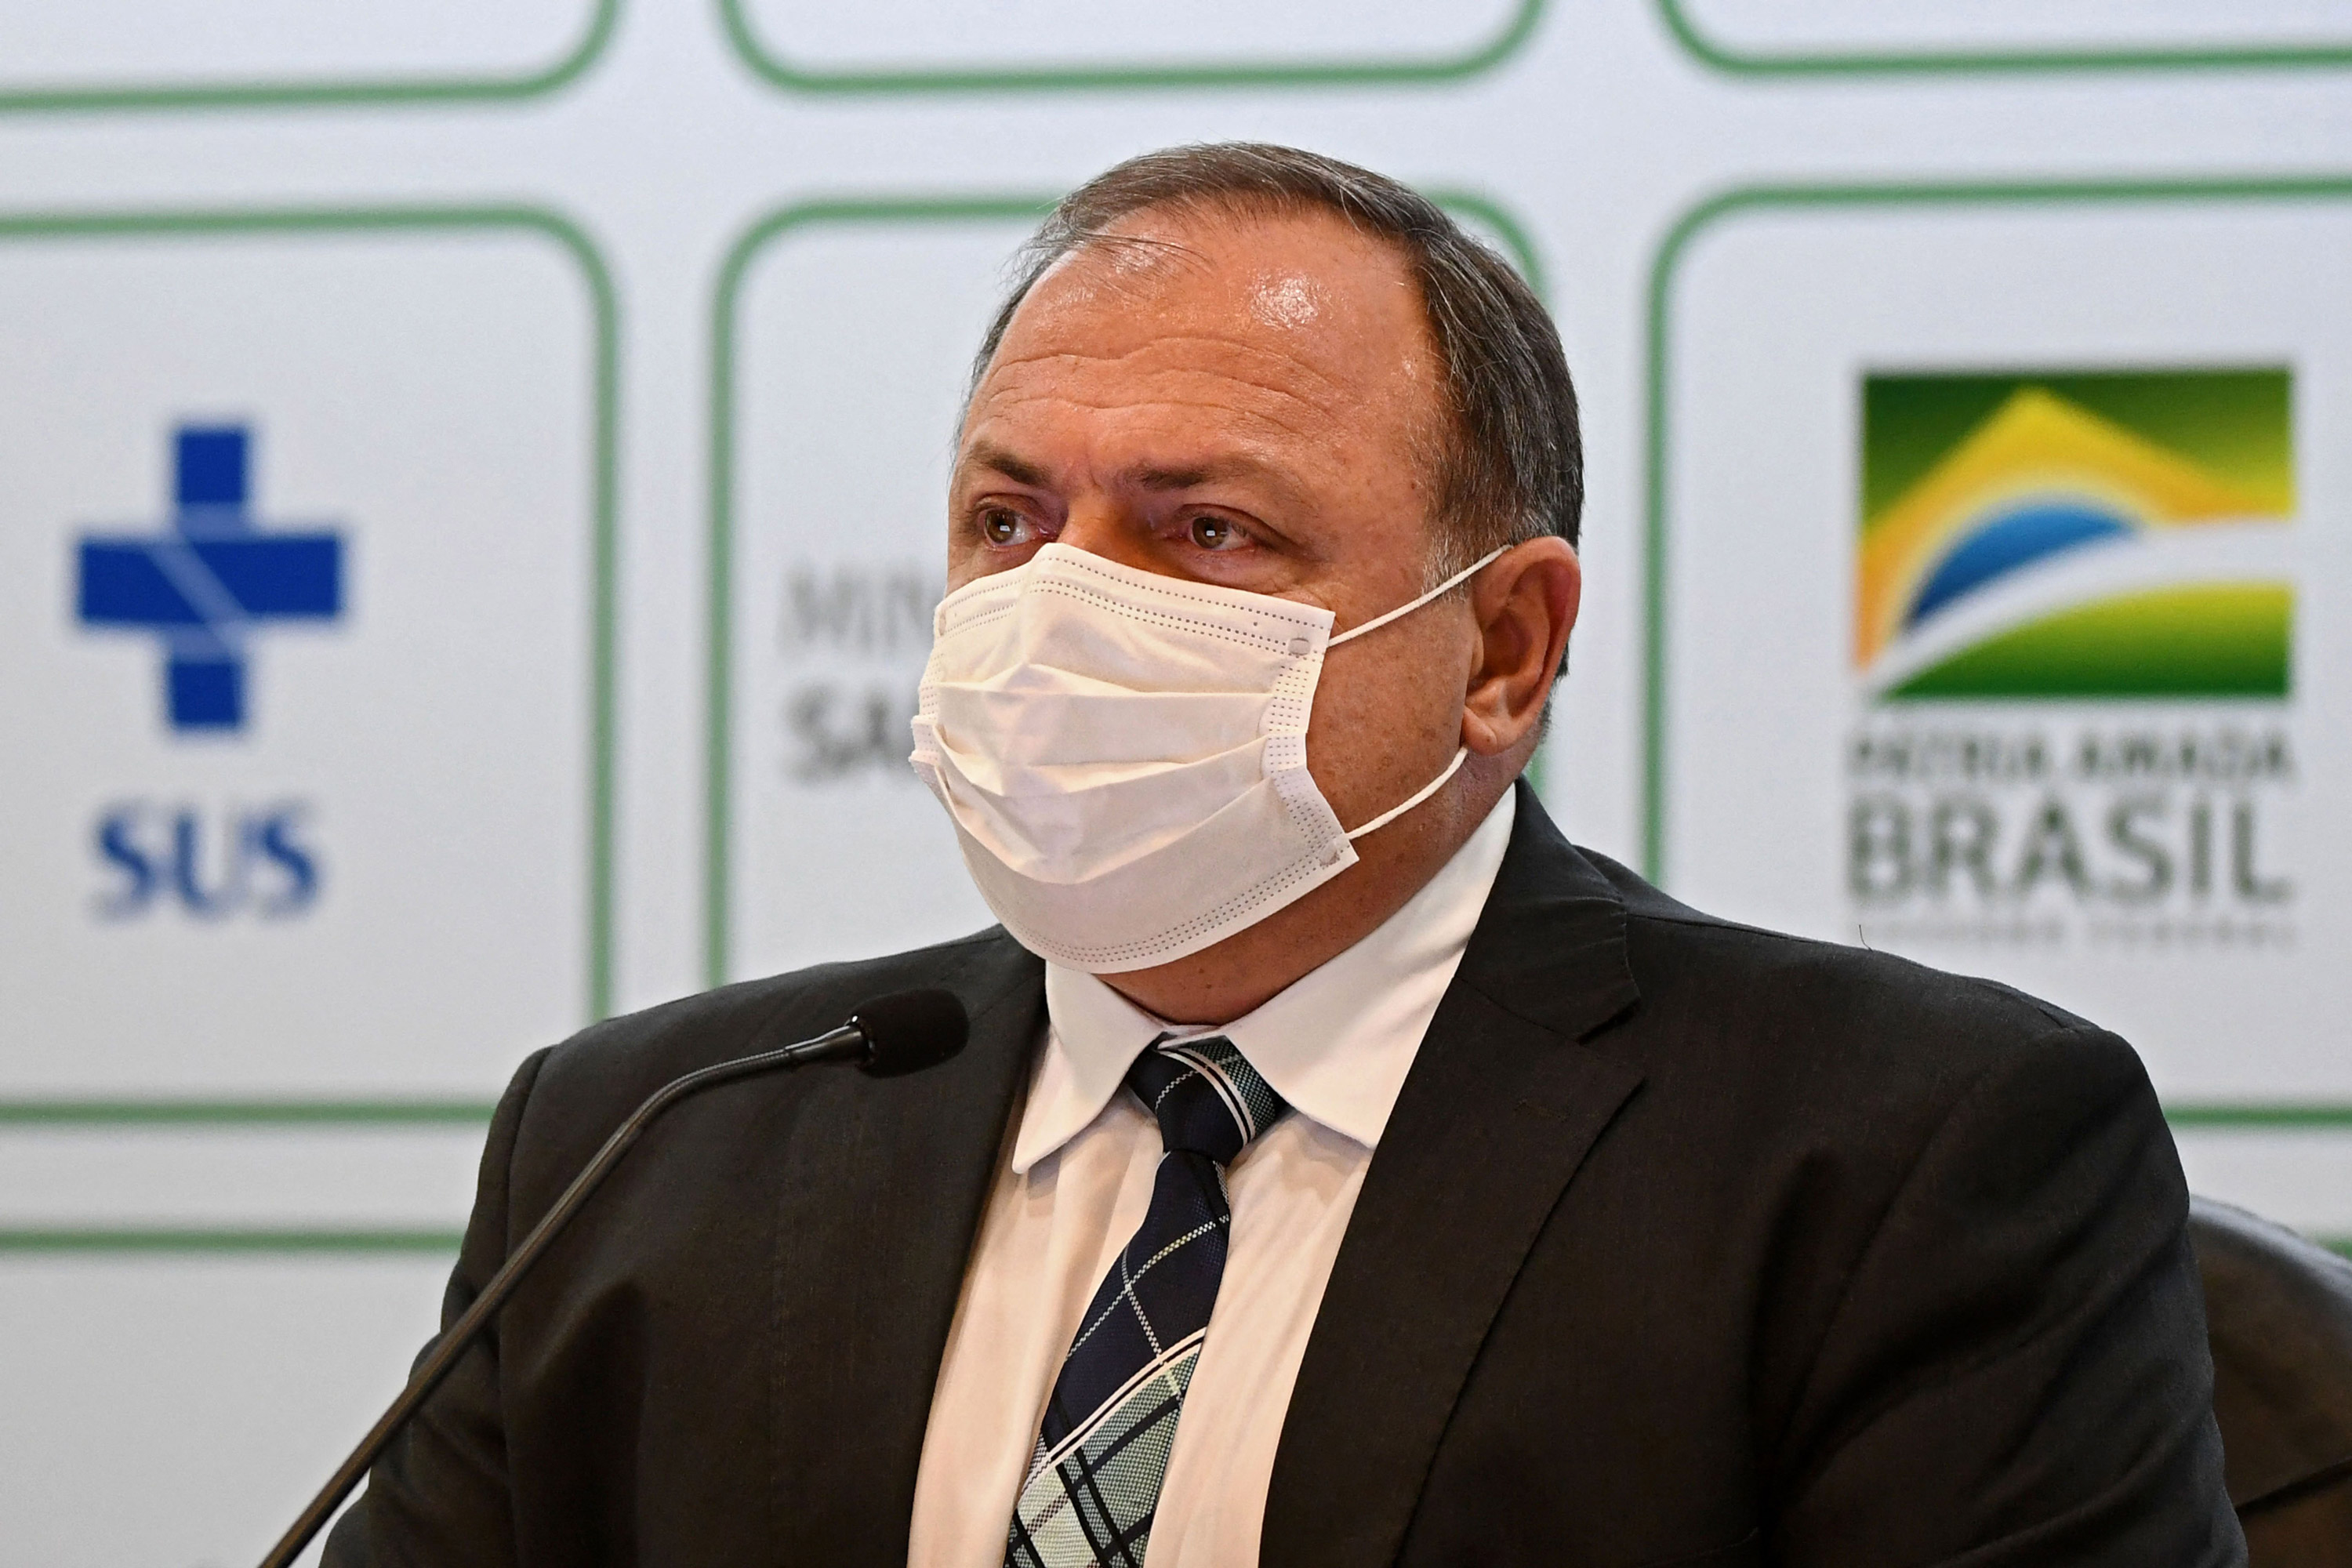 Brazilian Health Minister Eduardo Pazuello speaks during a press conference in Brasilia on March 15.